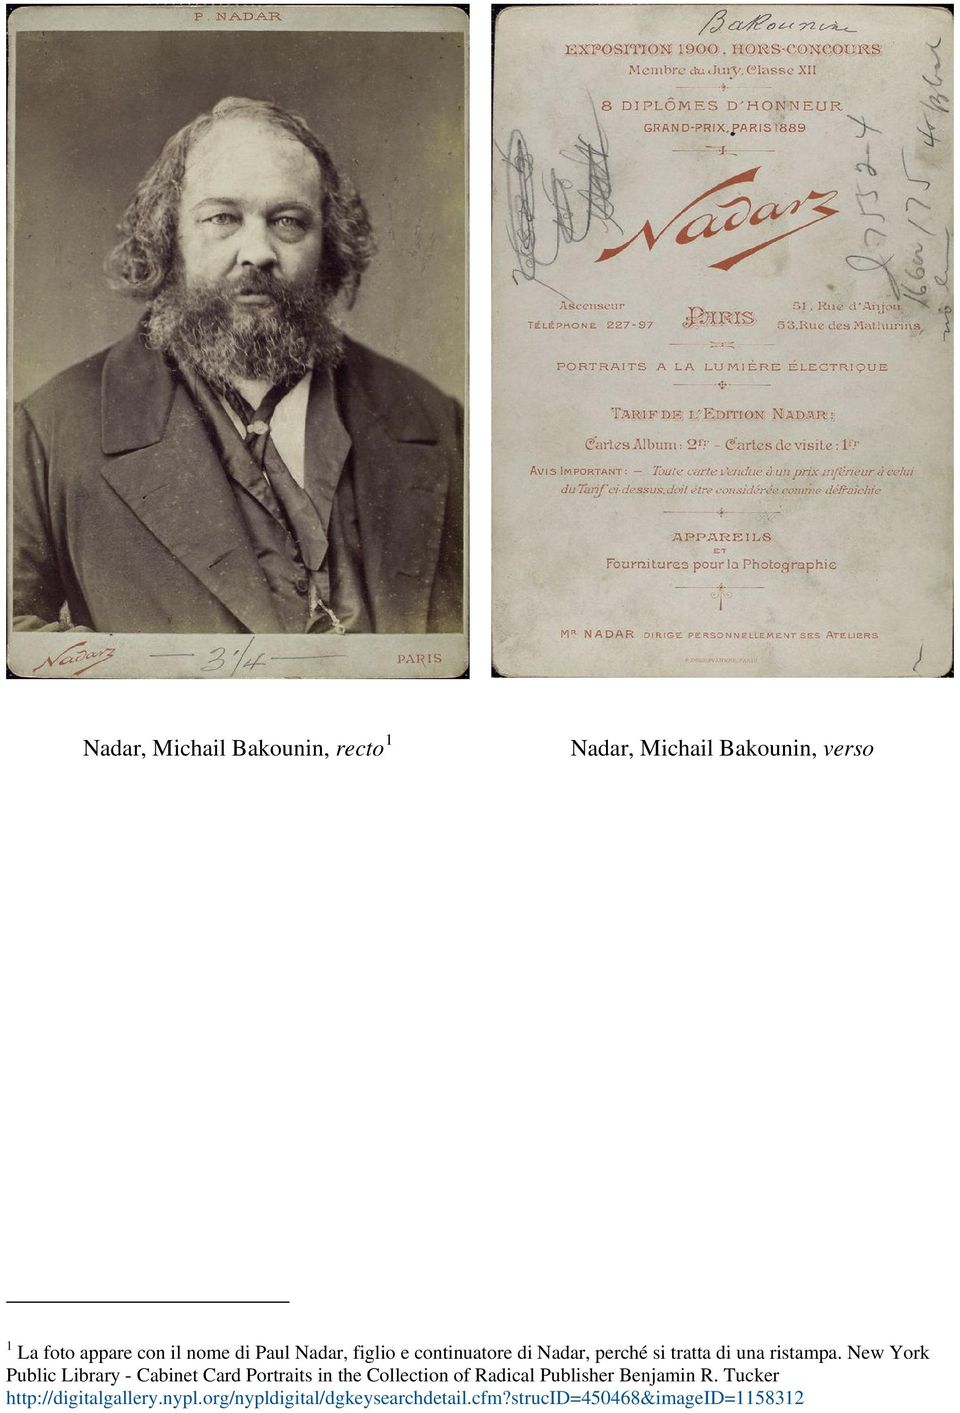 New York Public Library - Cabinet Card Portraits in the Collection of Radical Publisher